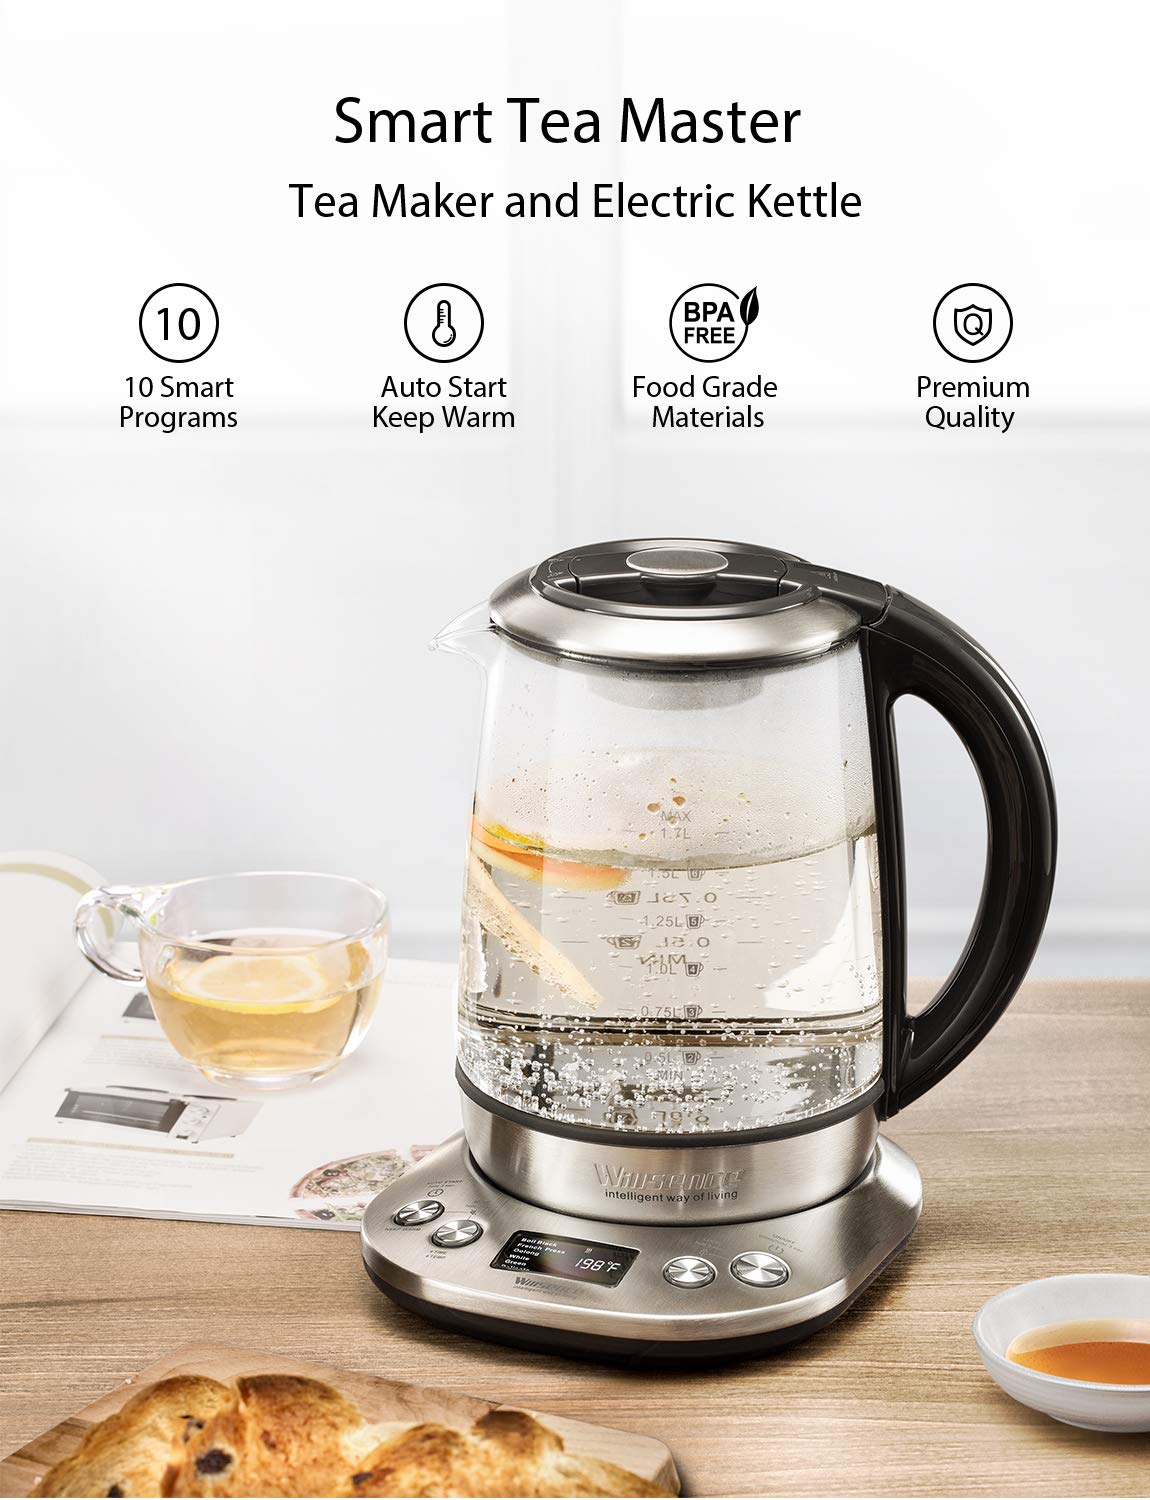 Willsence Electric Kettle, Electric Tea Kettle Stainless Steel Glass Boiler Hot Water Tea Heater with Temperature Control LCD Display, Removable Tea Infuser, 1.7 L, 1200W by Willsence (Image #2)